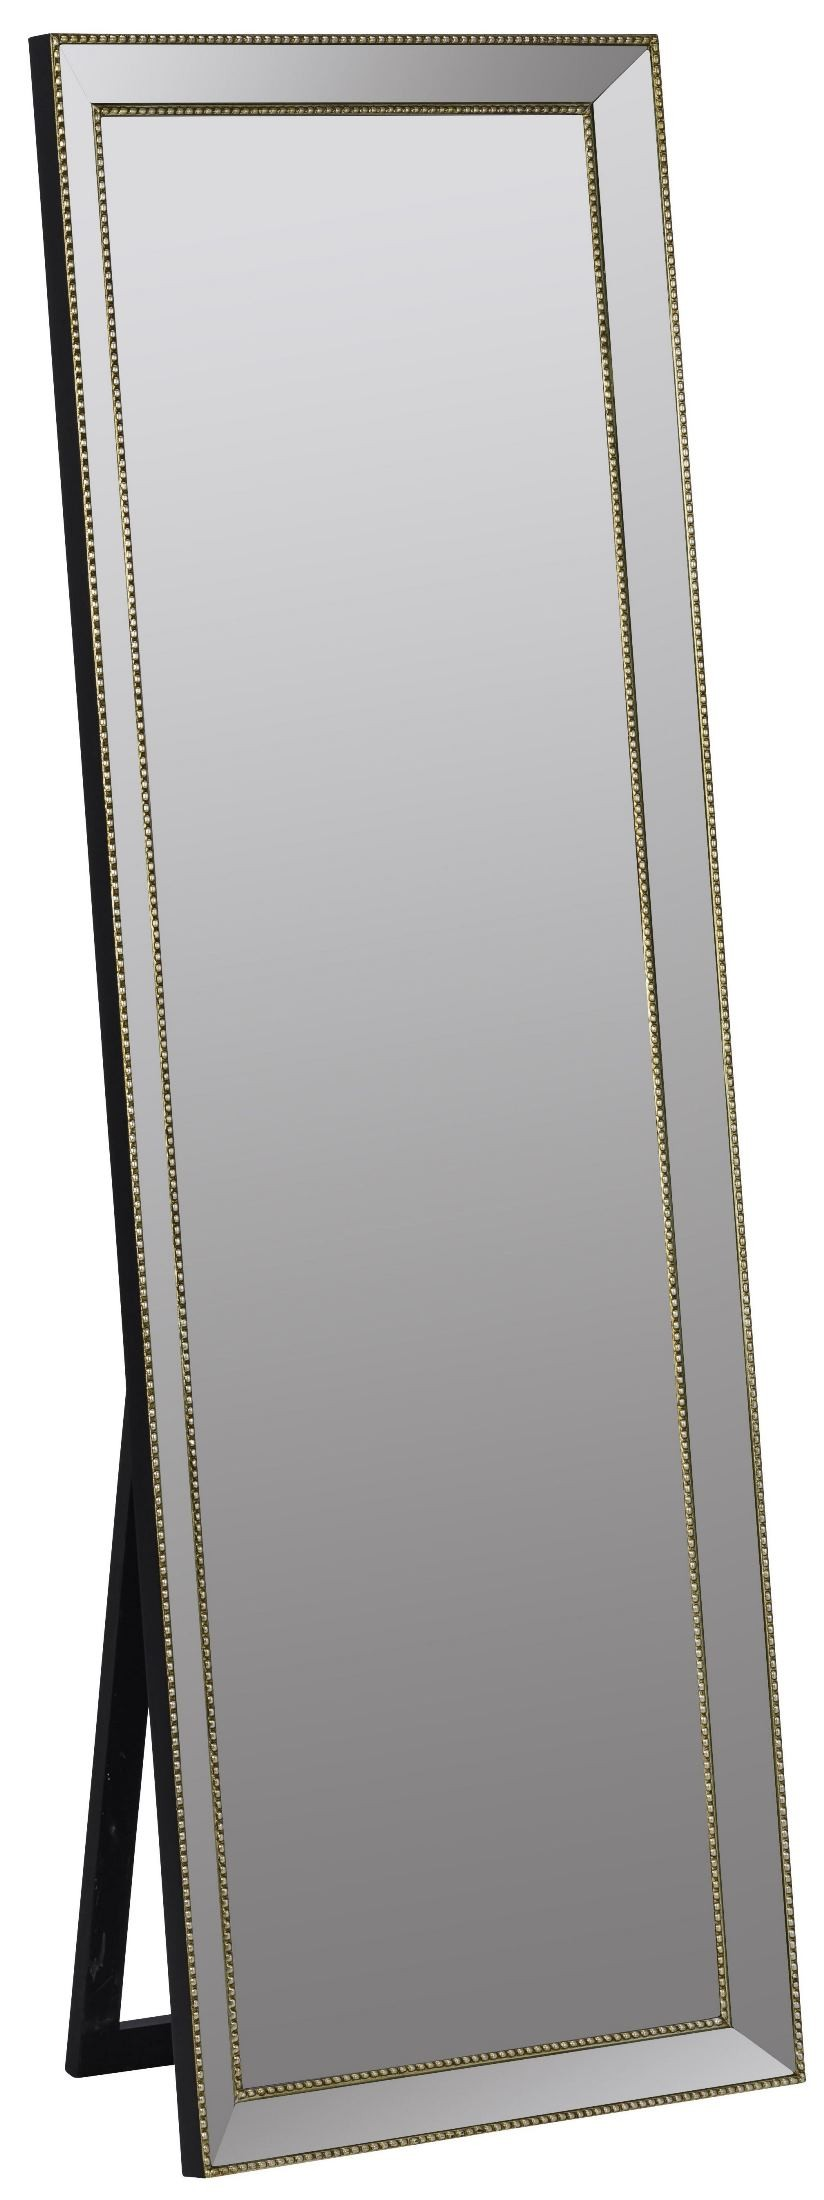 Kyson gold standing mirror 40971 cooper classics for Gold standing mirror